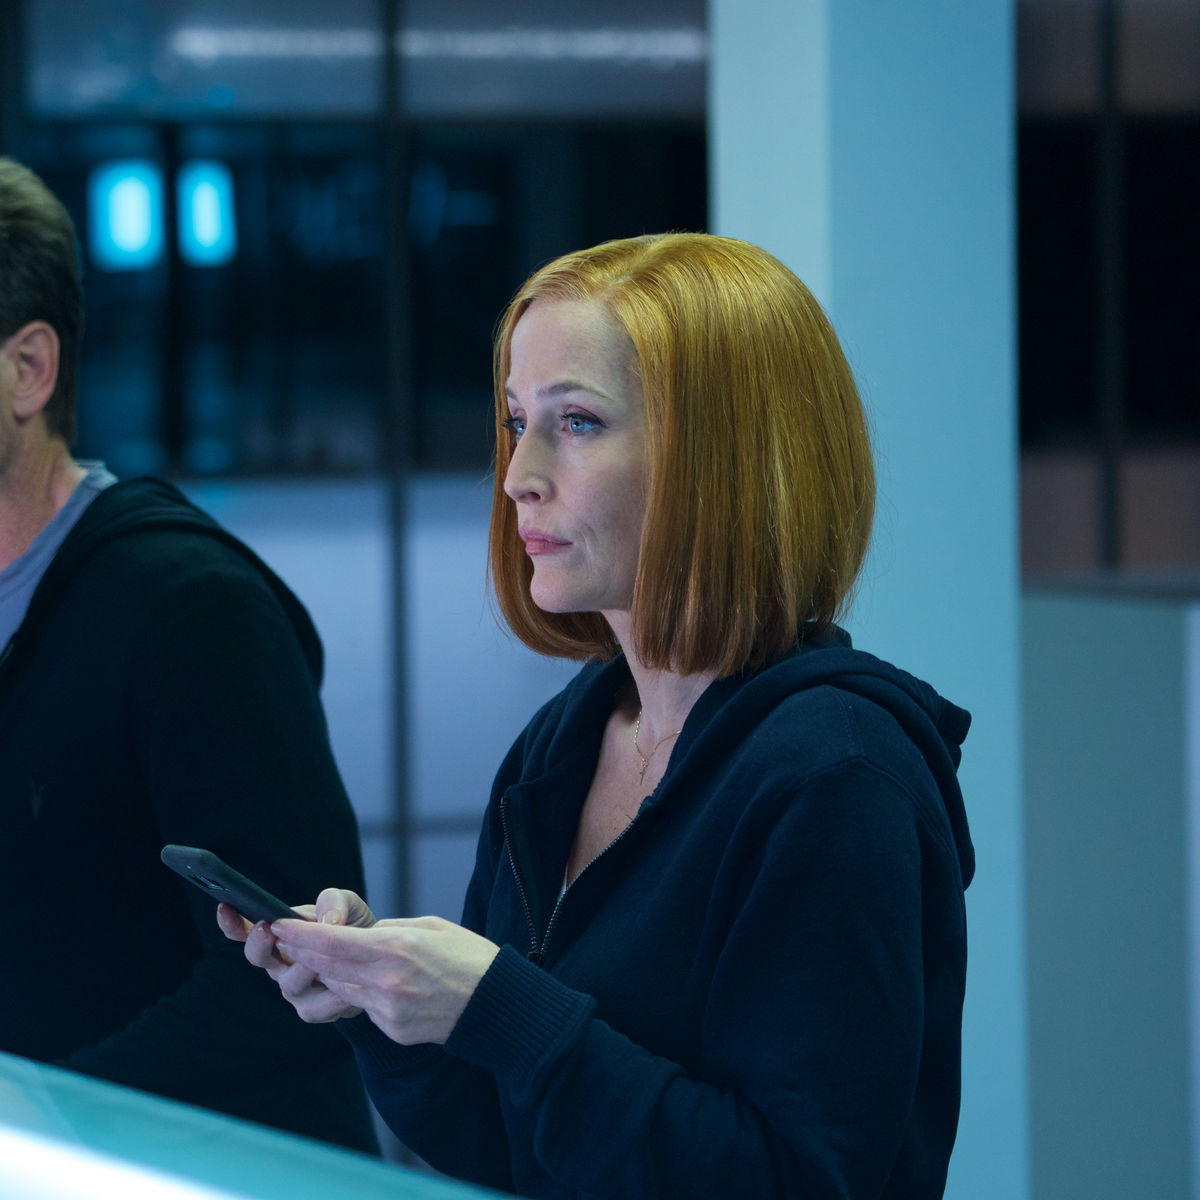 X-Files episode 1107 - Mulder and Scully on a sushi date